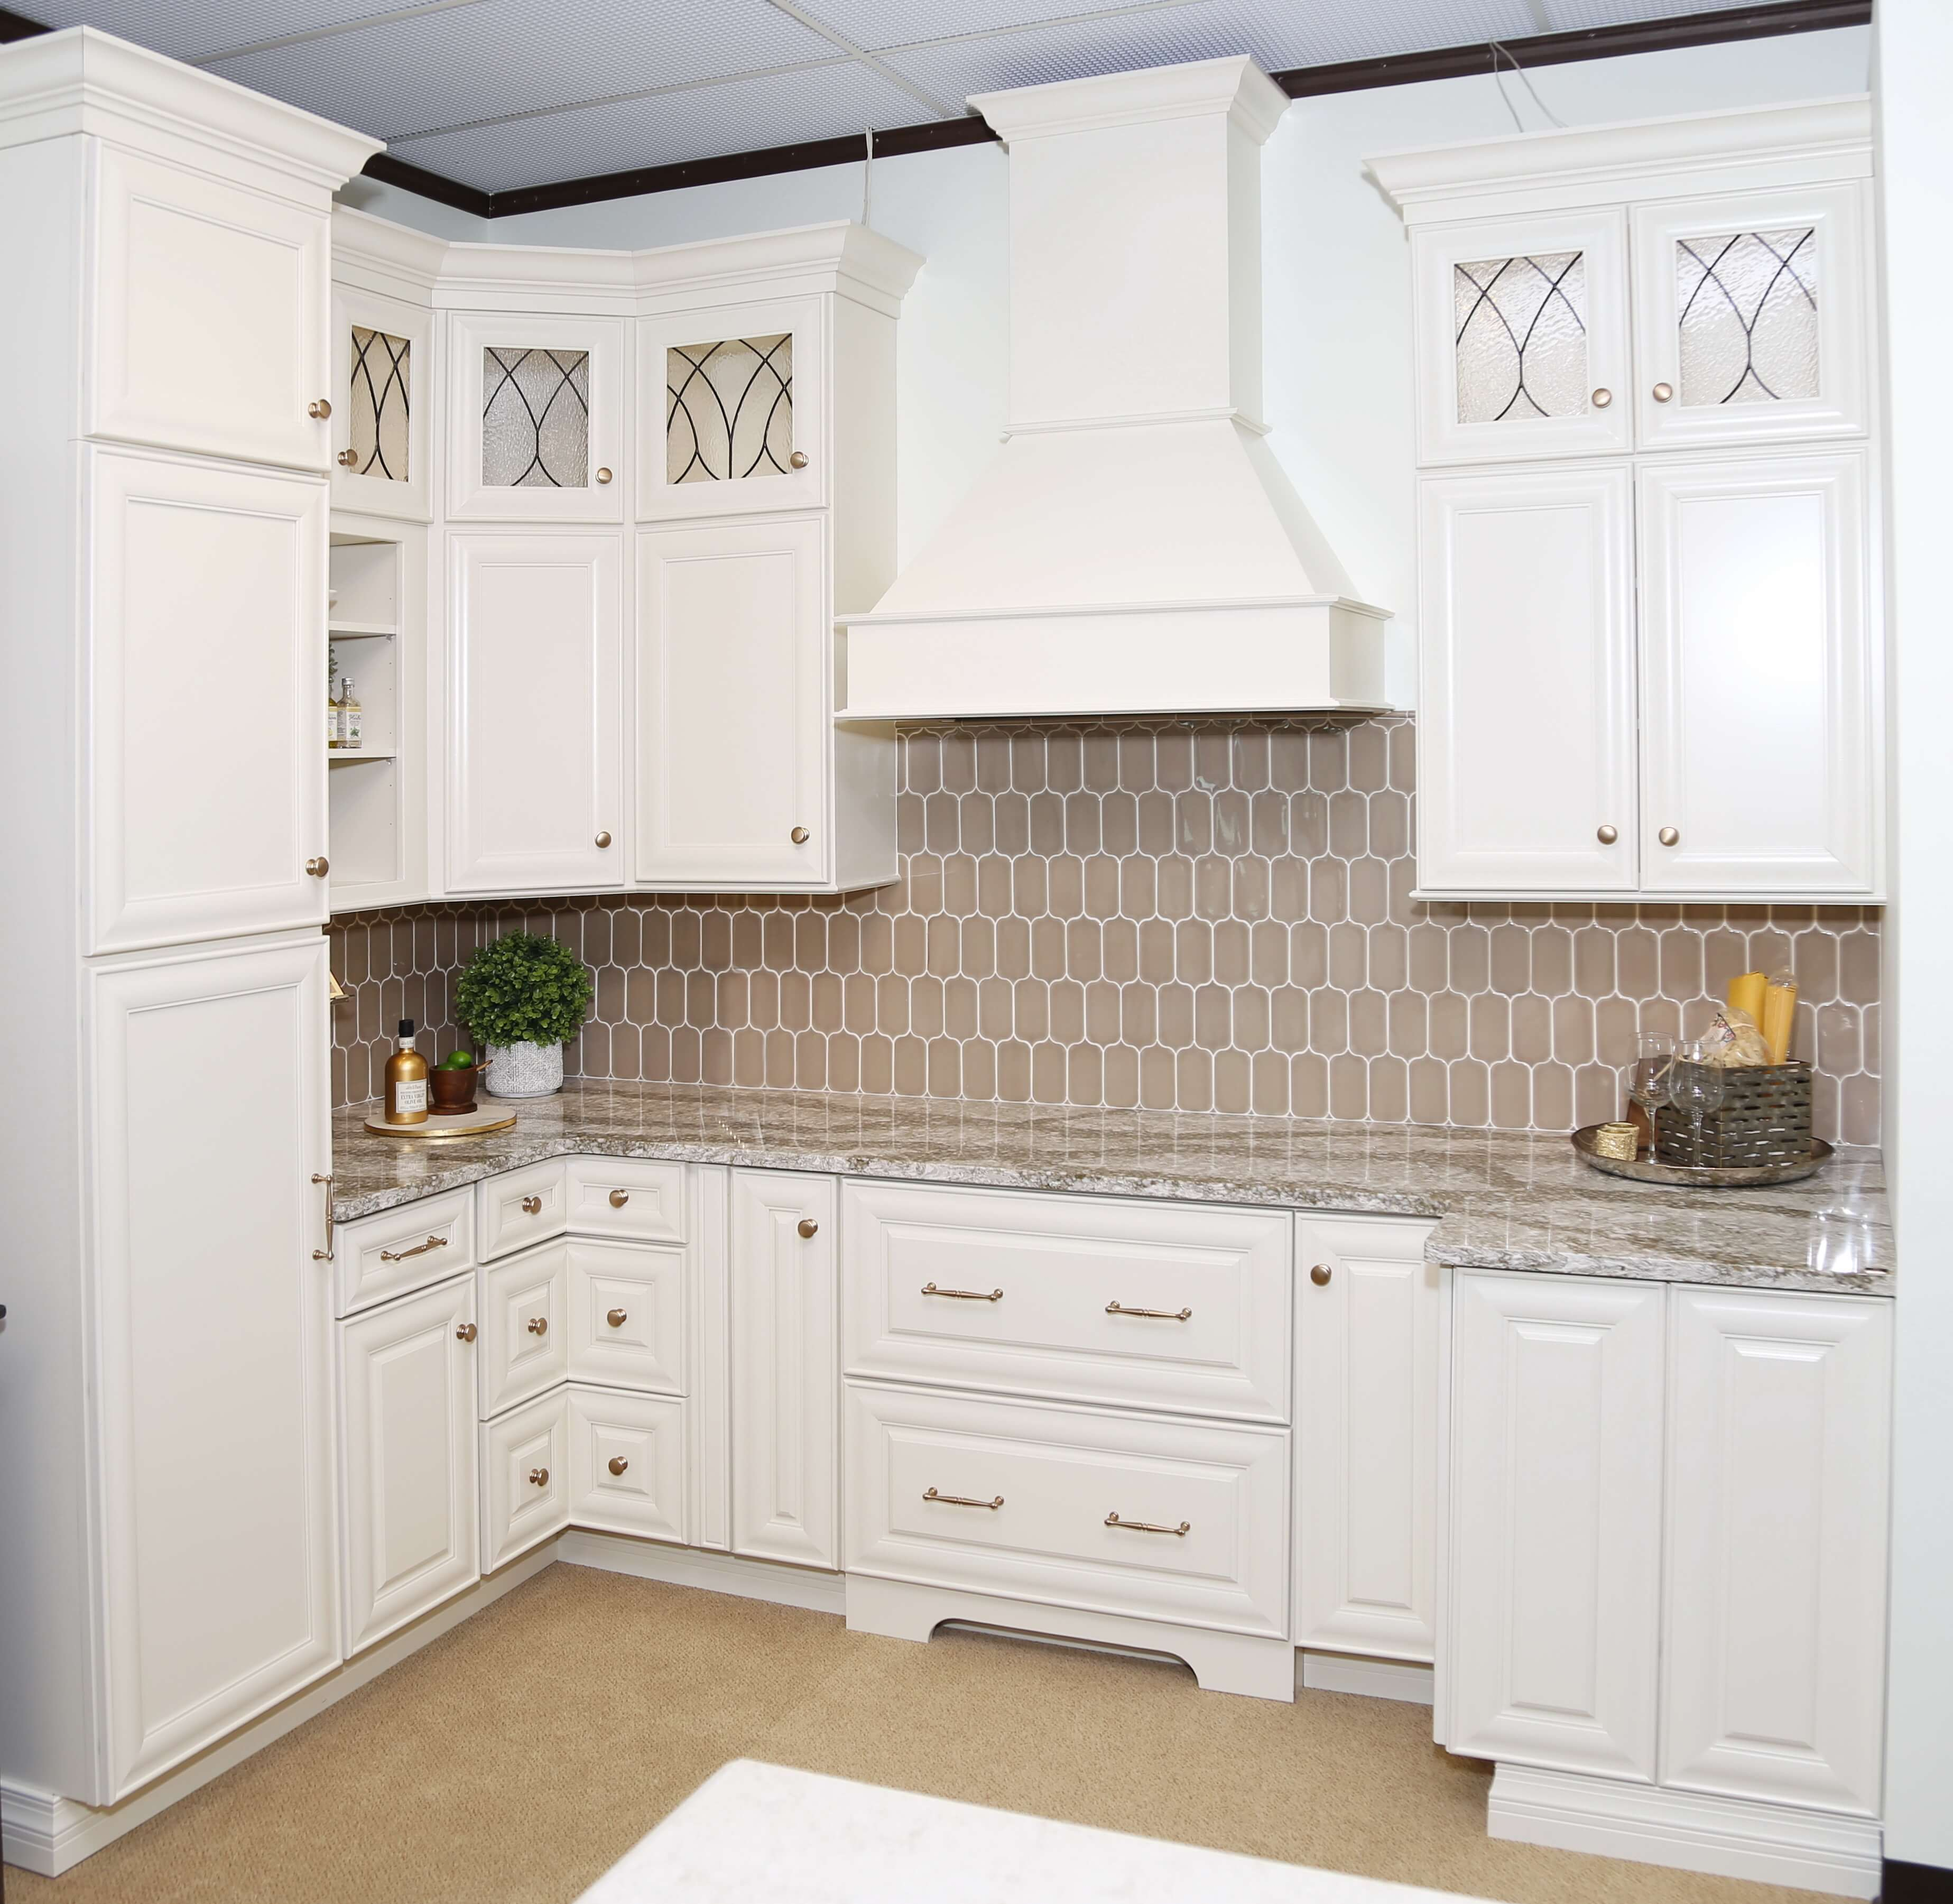 Kitchen Cabinets Naperville: Naperville Photo Gallery